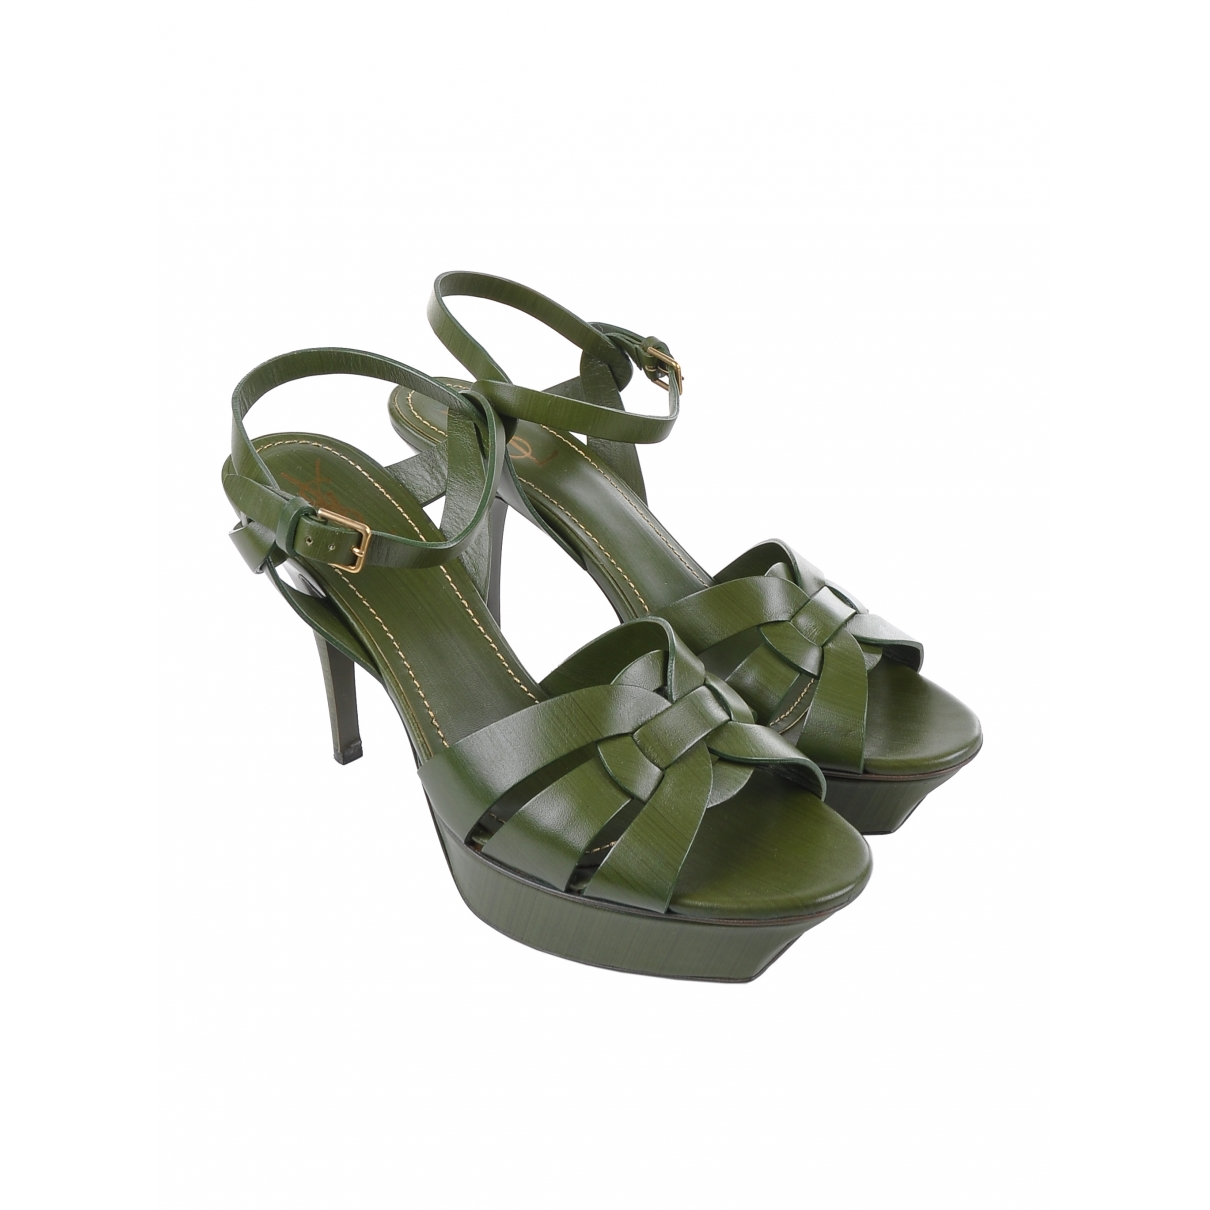 Saint Laurent Tribute Sandalen in  Gruen Leder